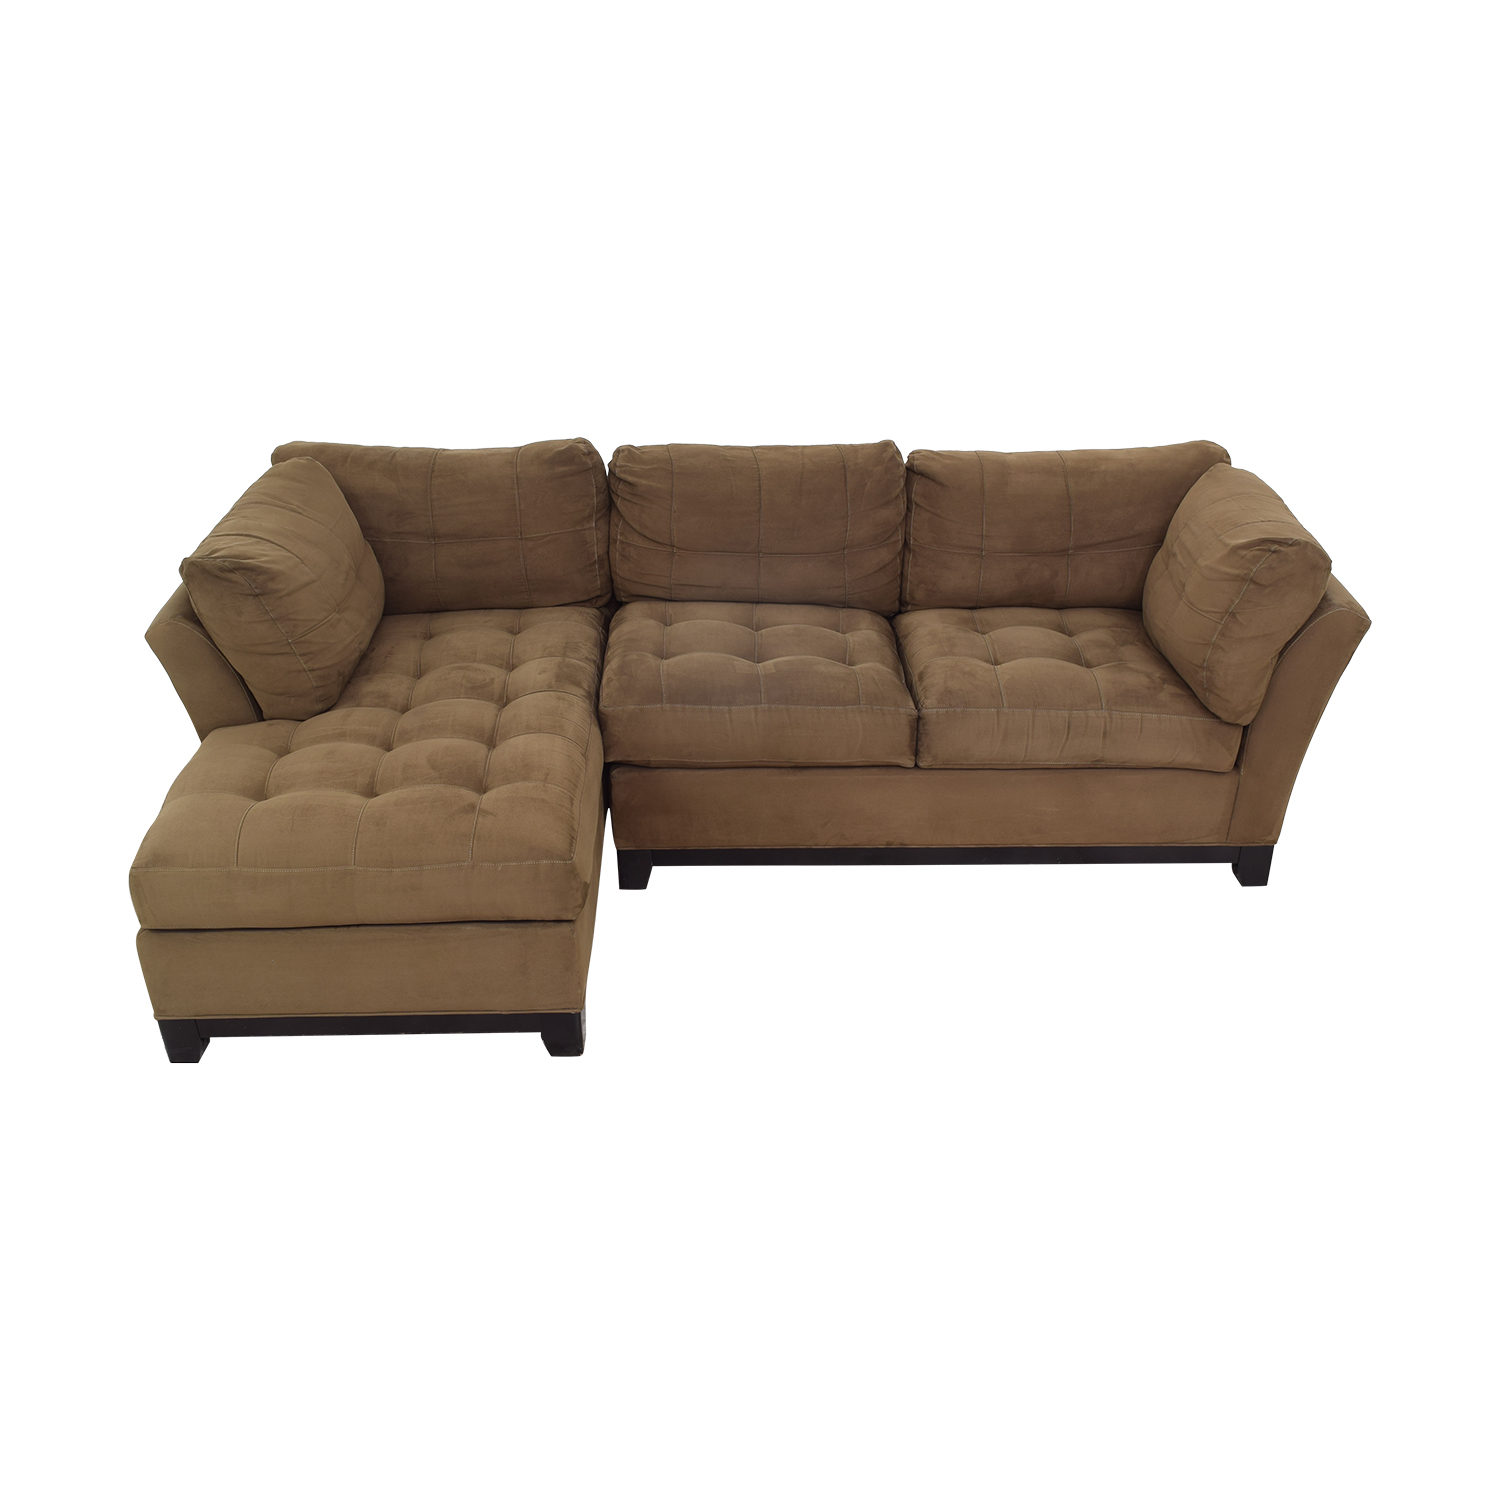 buy Cindy Crawford Home Metropolis Sectional Sofa Cindy Crawford Home Sectionals